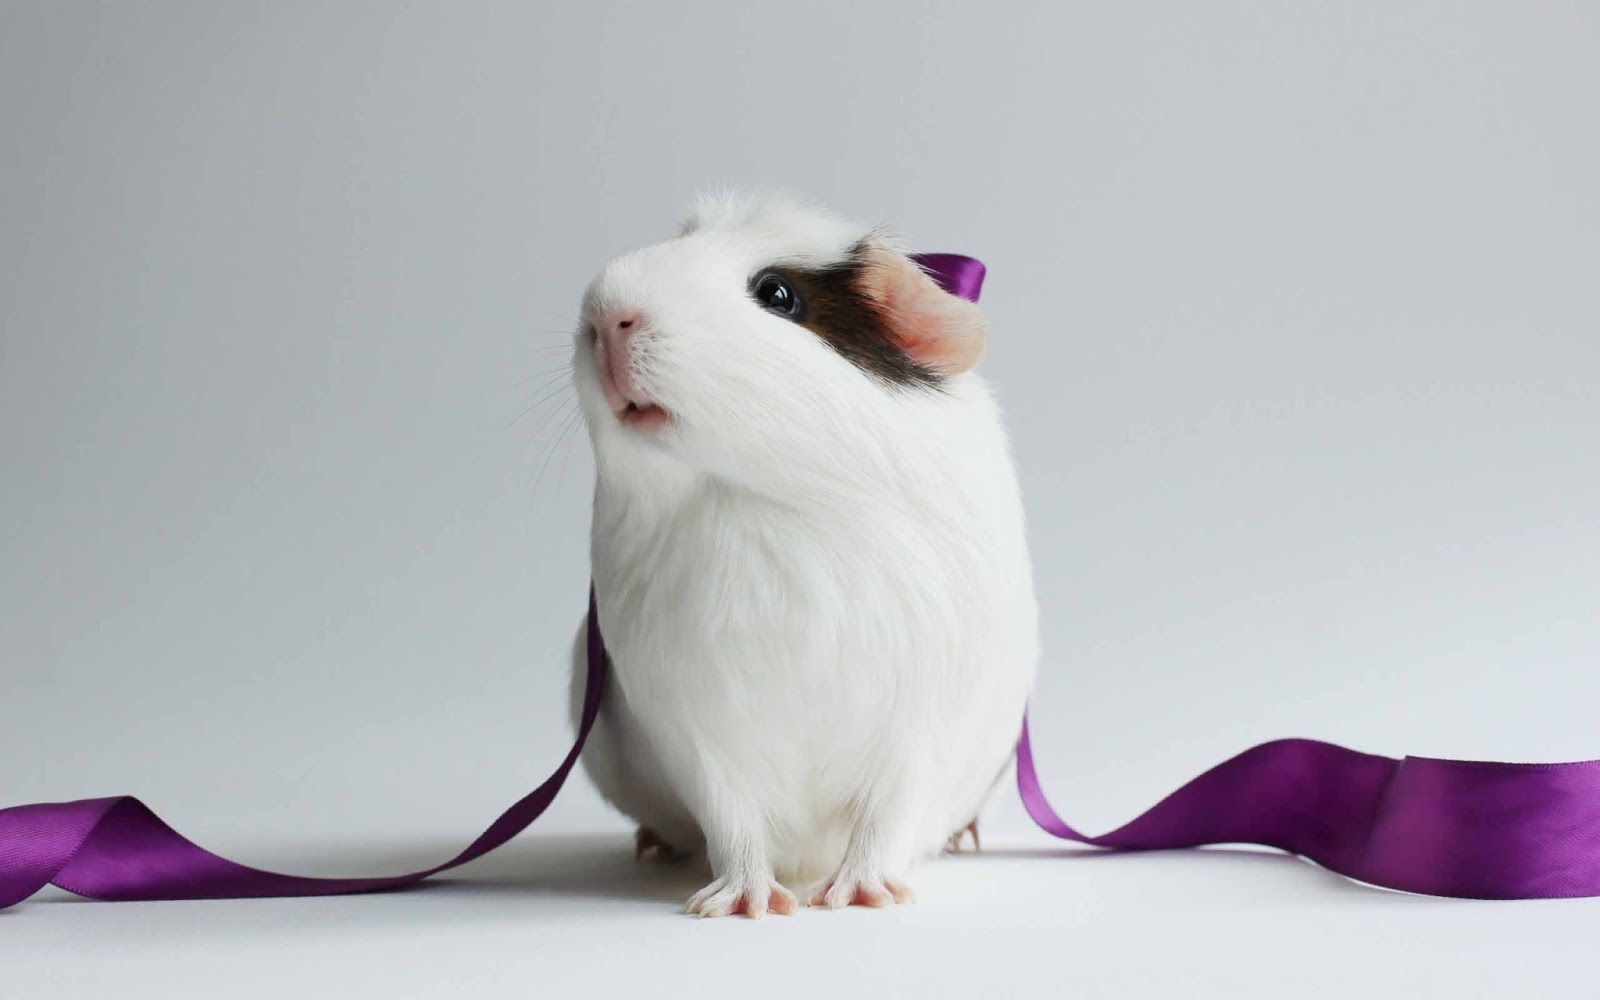 guinea pig hd wallpapers backgrounds wallpaper 736×576 pictures of